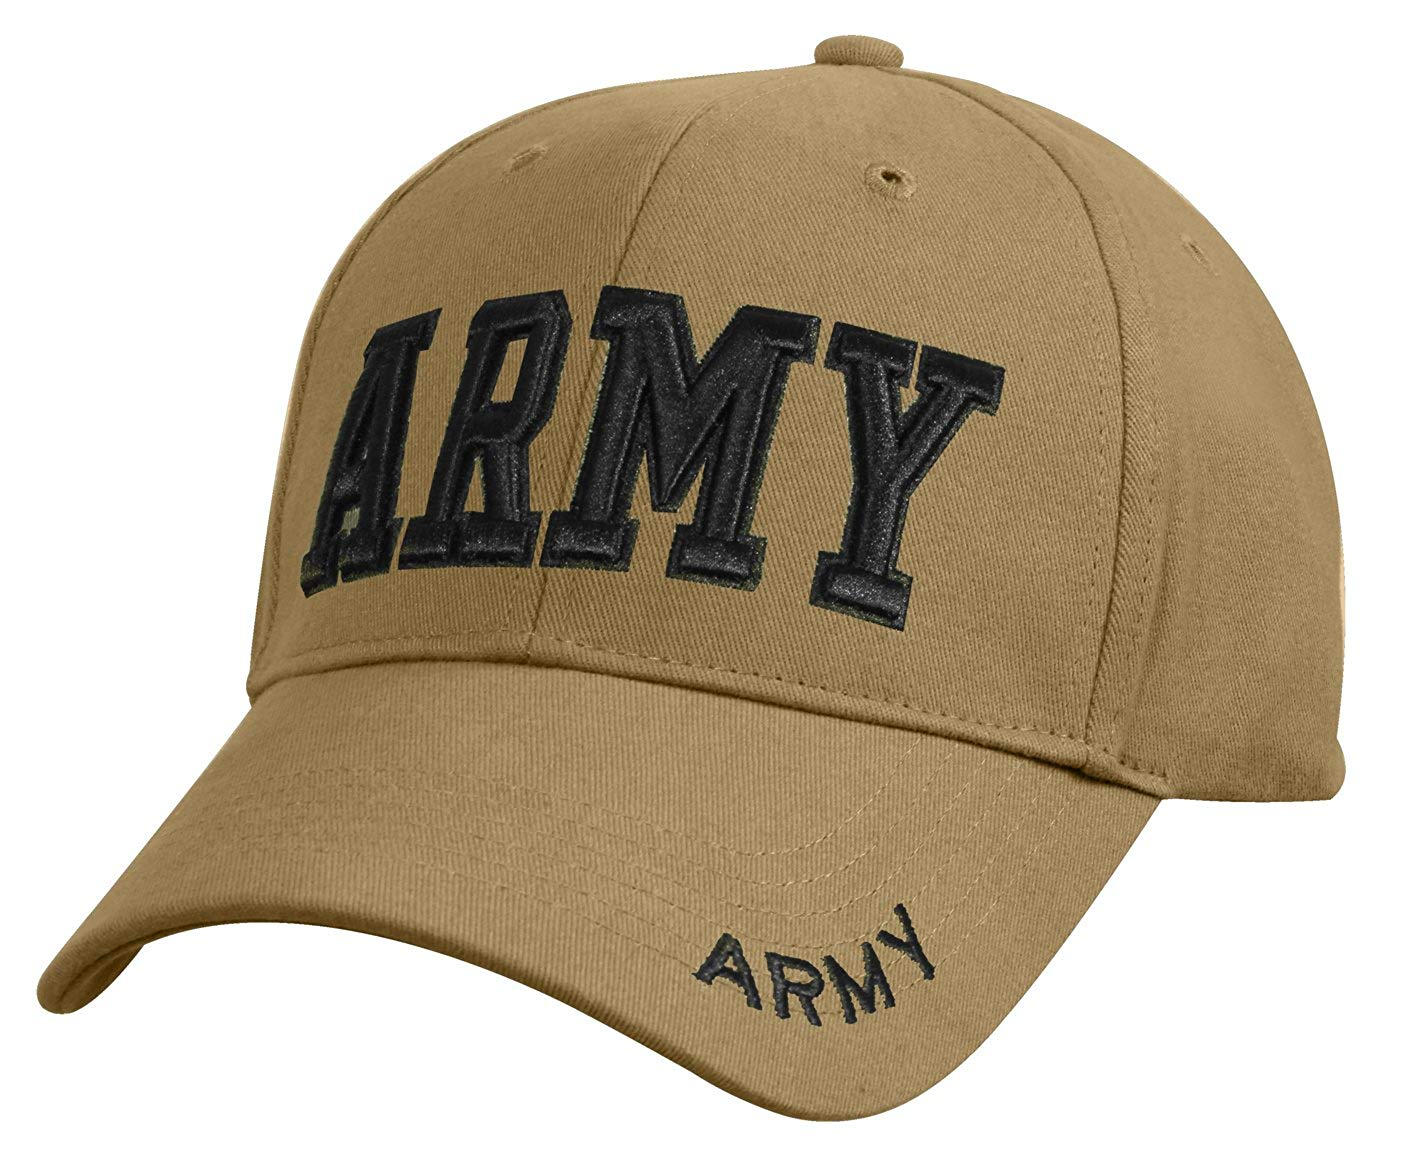 Army Embroidered Insignia Cap